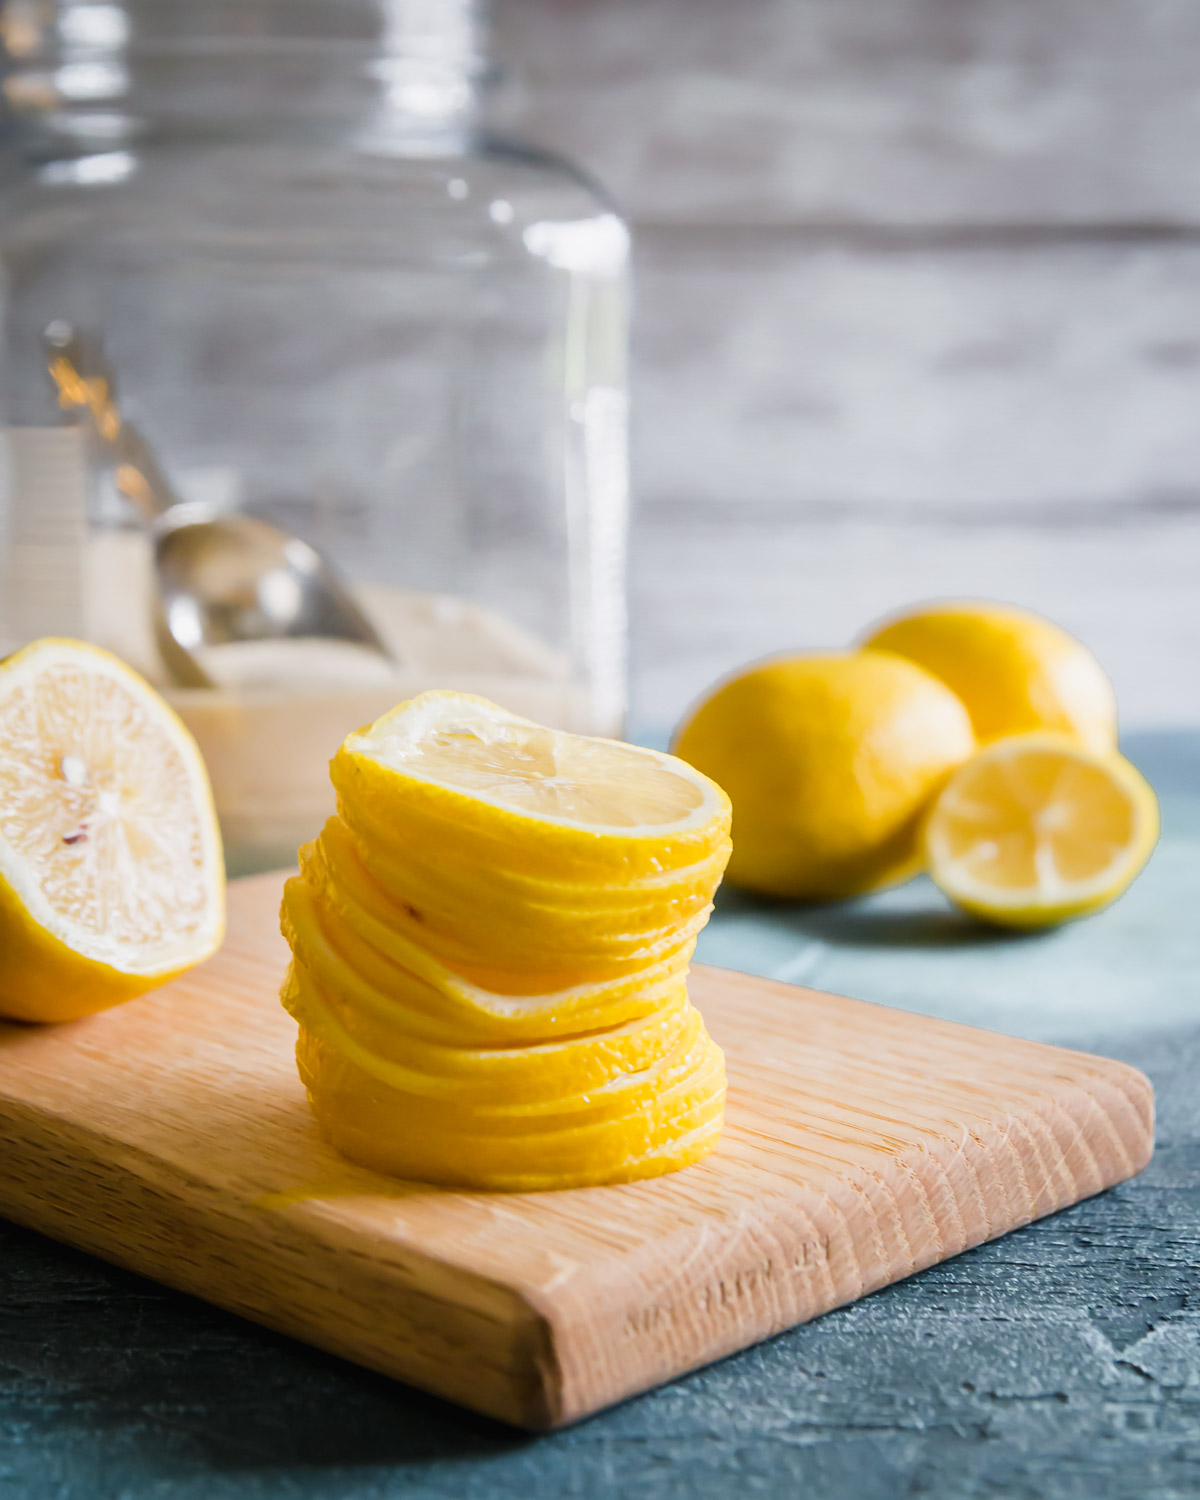 thinly sliced lemons to make candied lemon slices